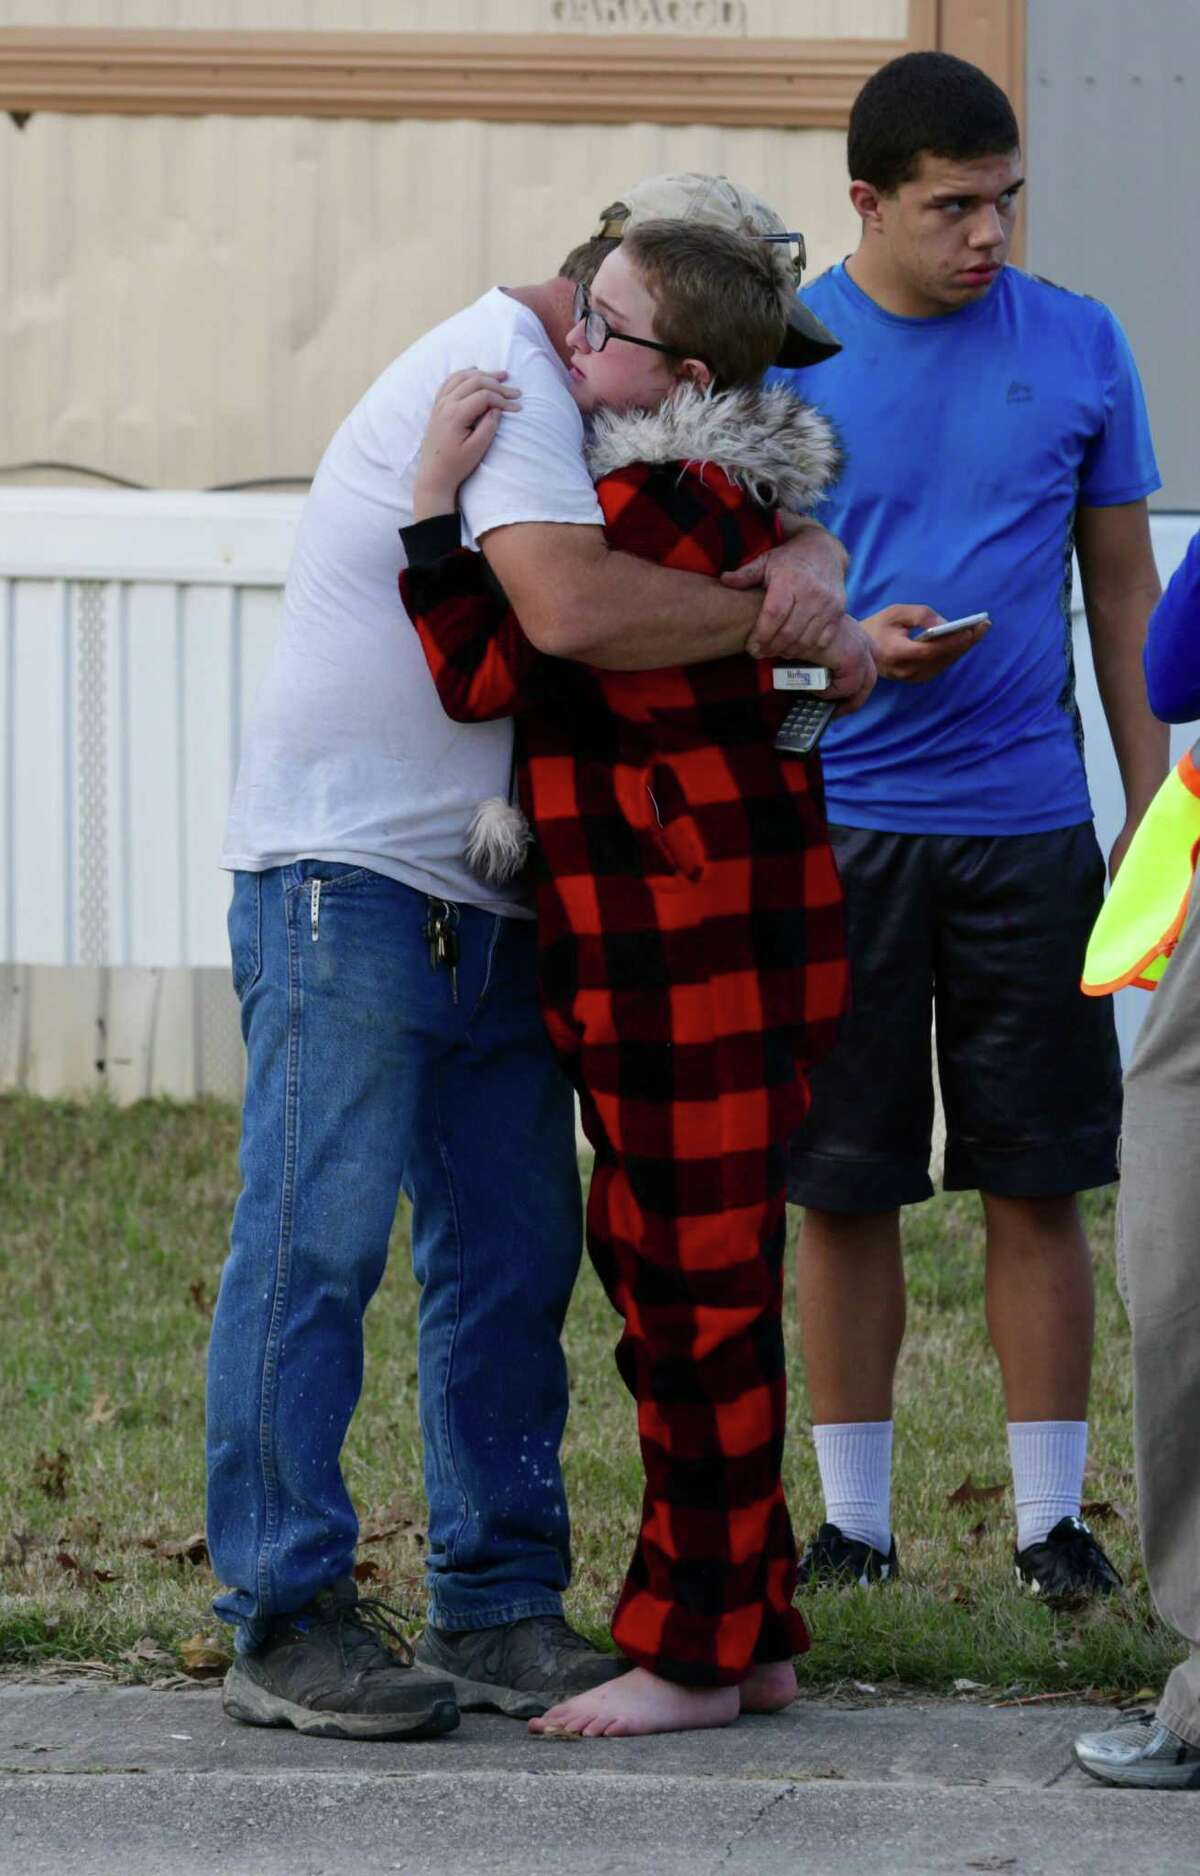 Ron Lawrence, left, comforts his daughter, Kallie Lawrence, 11, who knew Kameron Prescott, a 6-year-old boy who was fatally wounded by Bexar County Sheriff's deputies while they were pursuing a suspect in the Pecan Grove mobile home community in Schertz on Dec. 21, 2017.